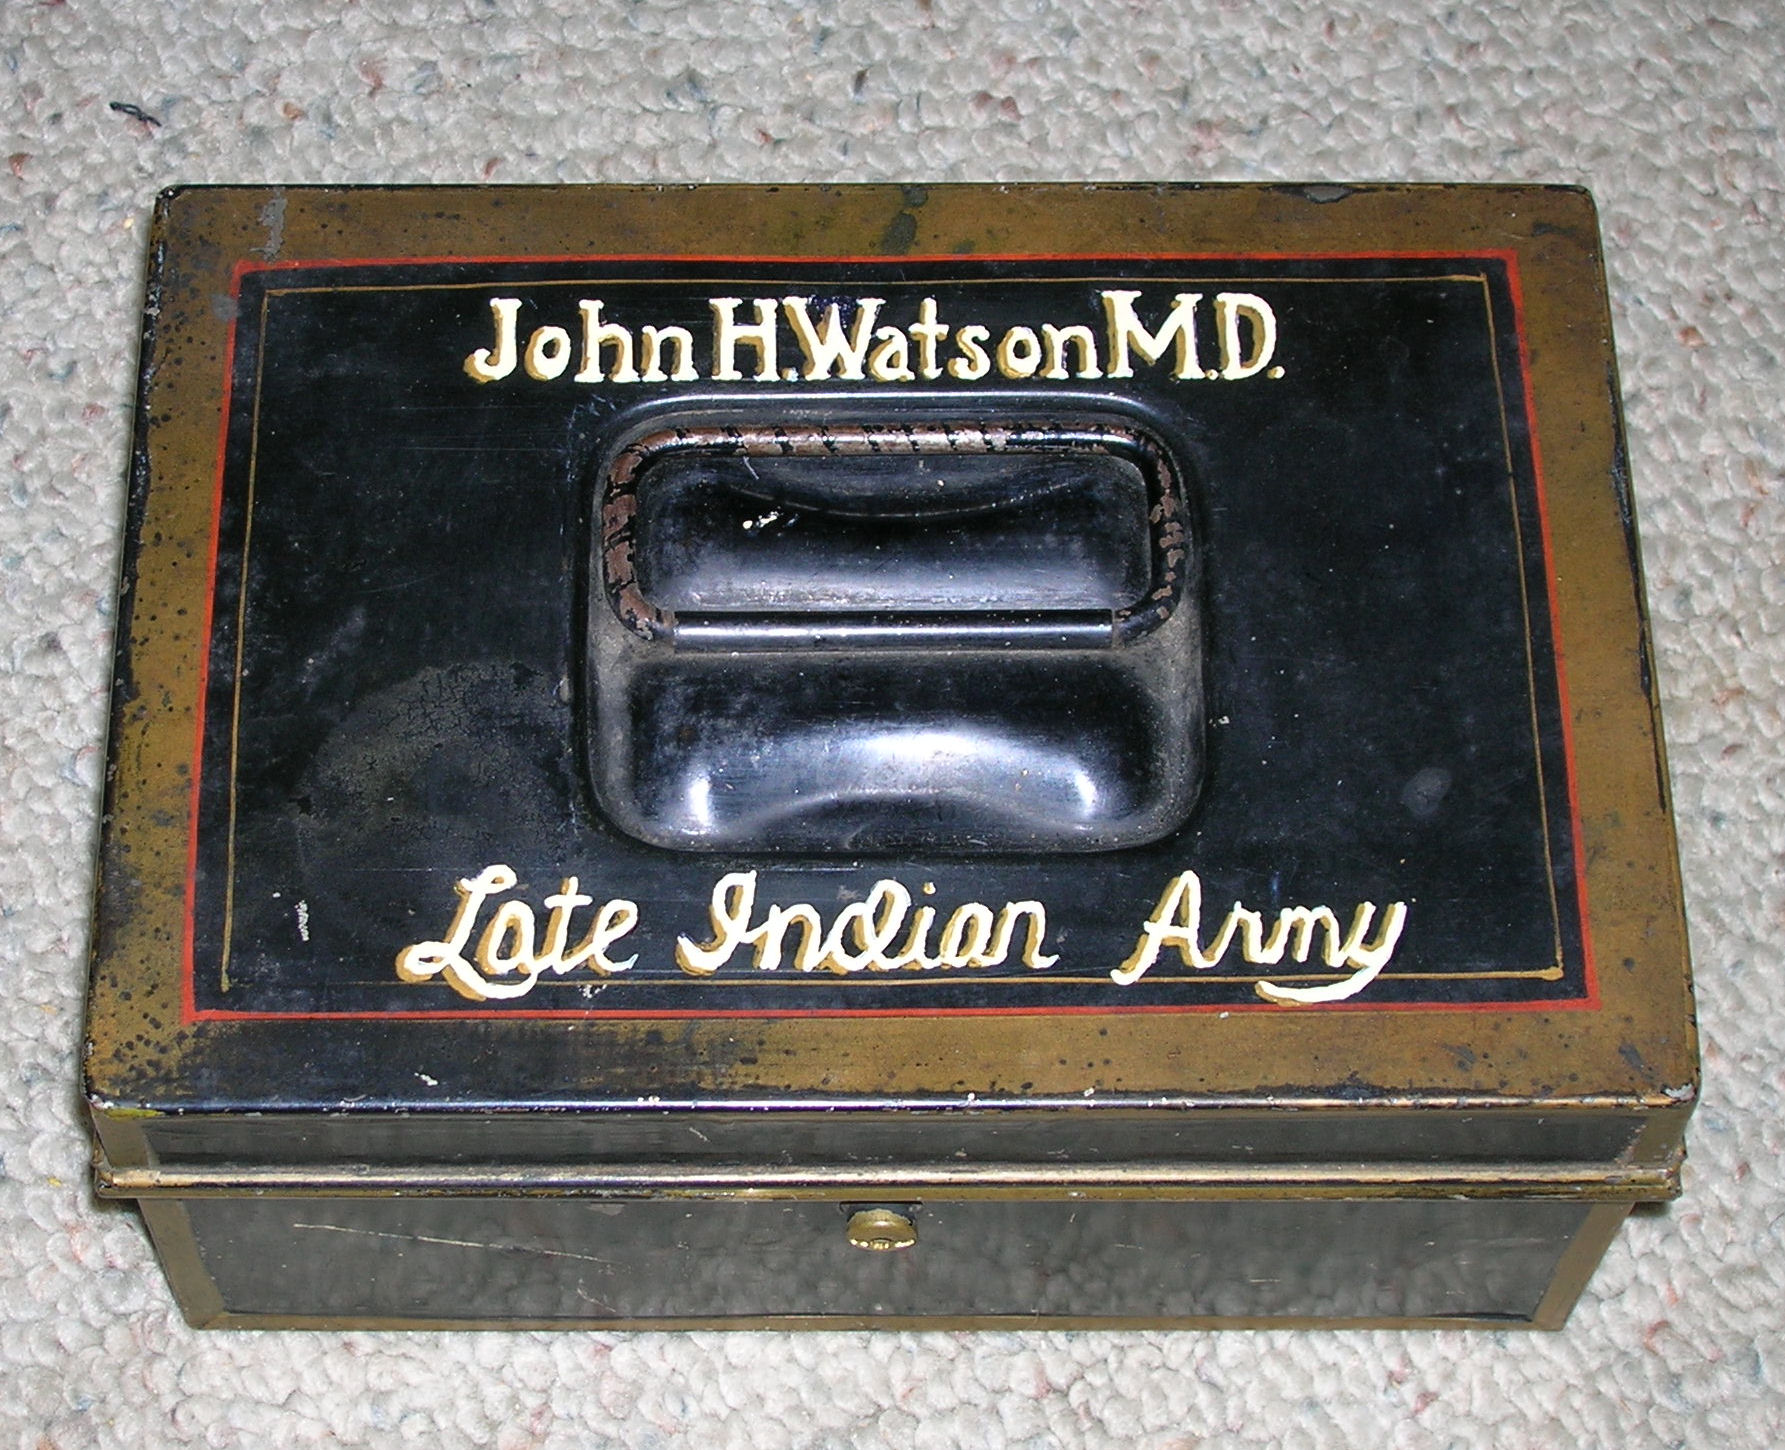 From Watson's Tin Box: The Dying Detective